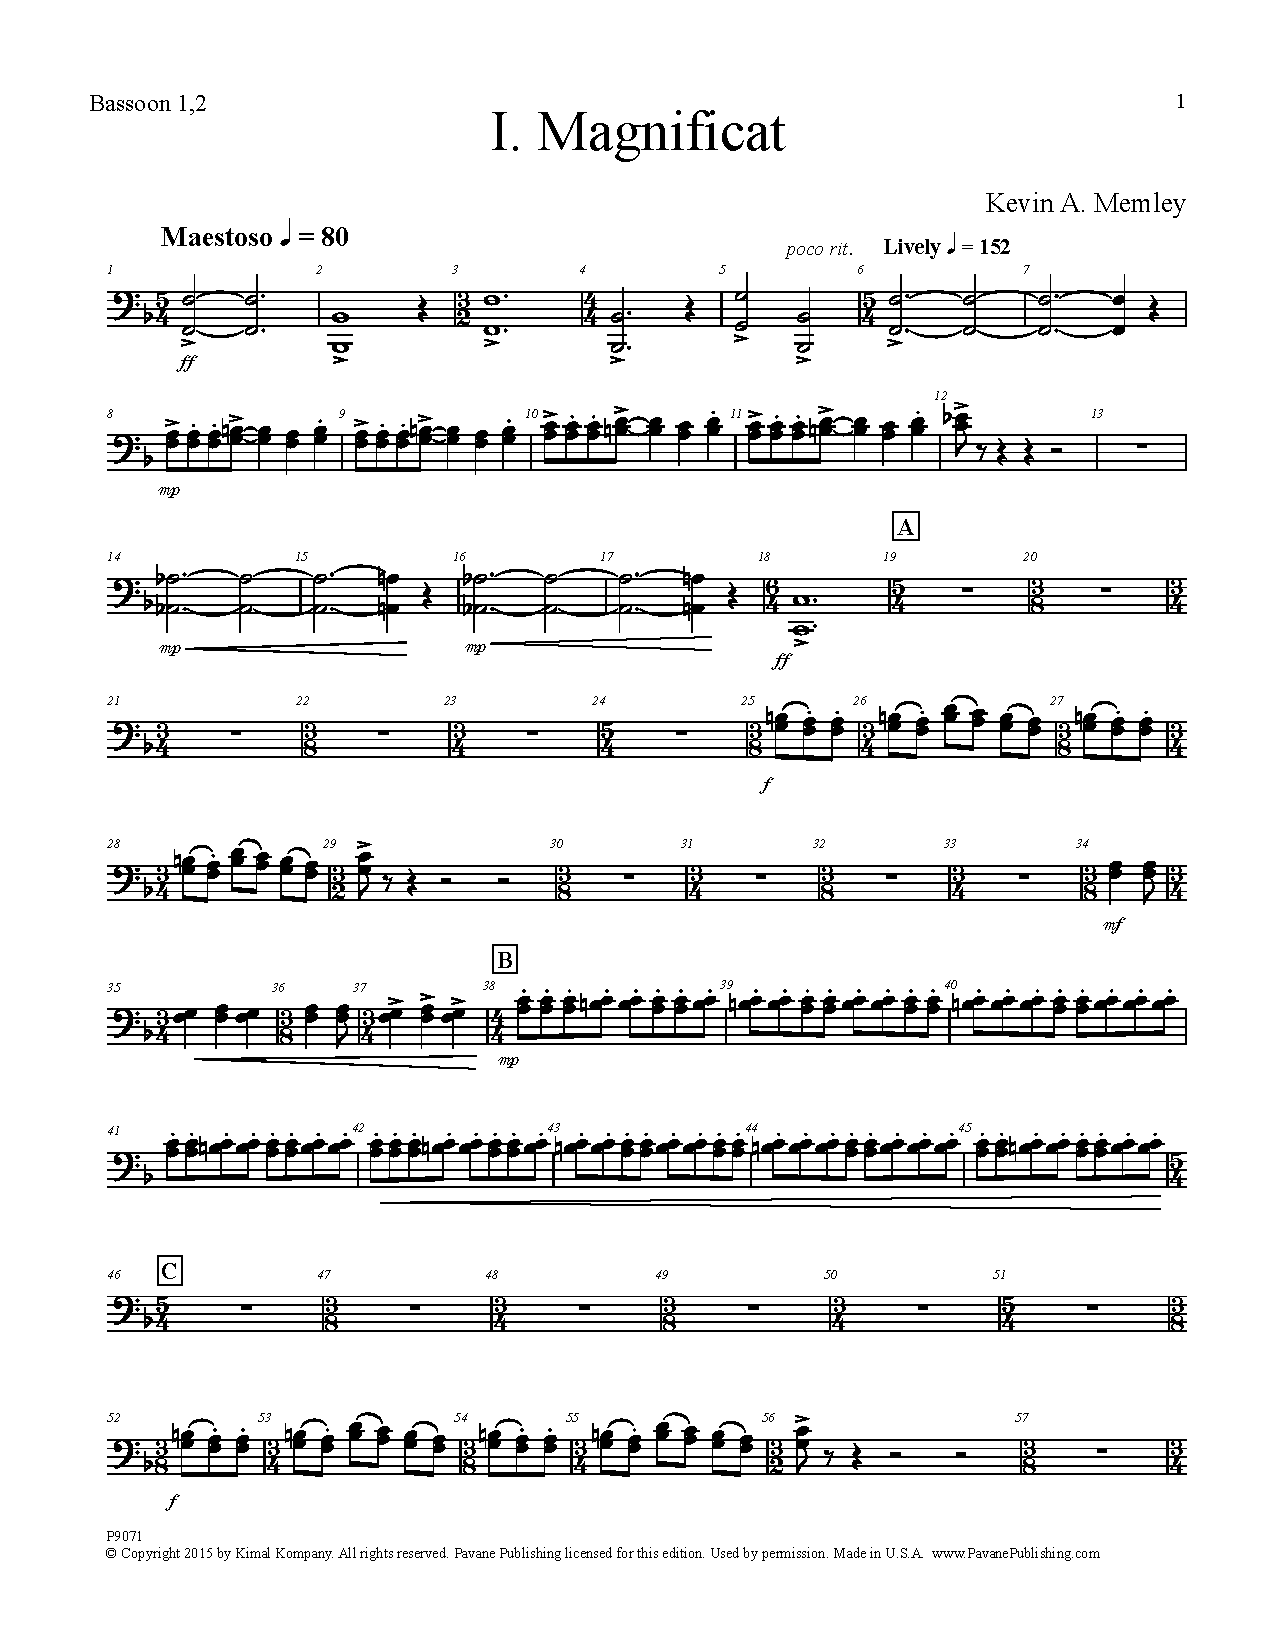 Kevin A. Memley Magnificat - Bassoon 1, 2 sheet music preview music notes and score for Choir Instrumental Pak including 6 page(s)